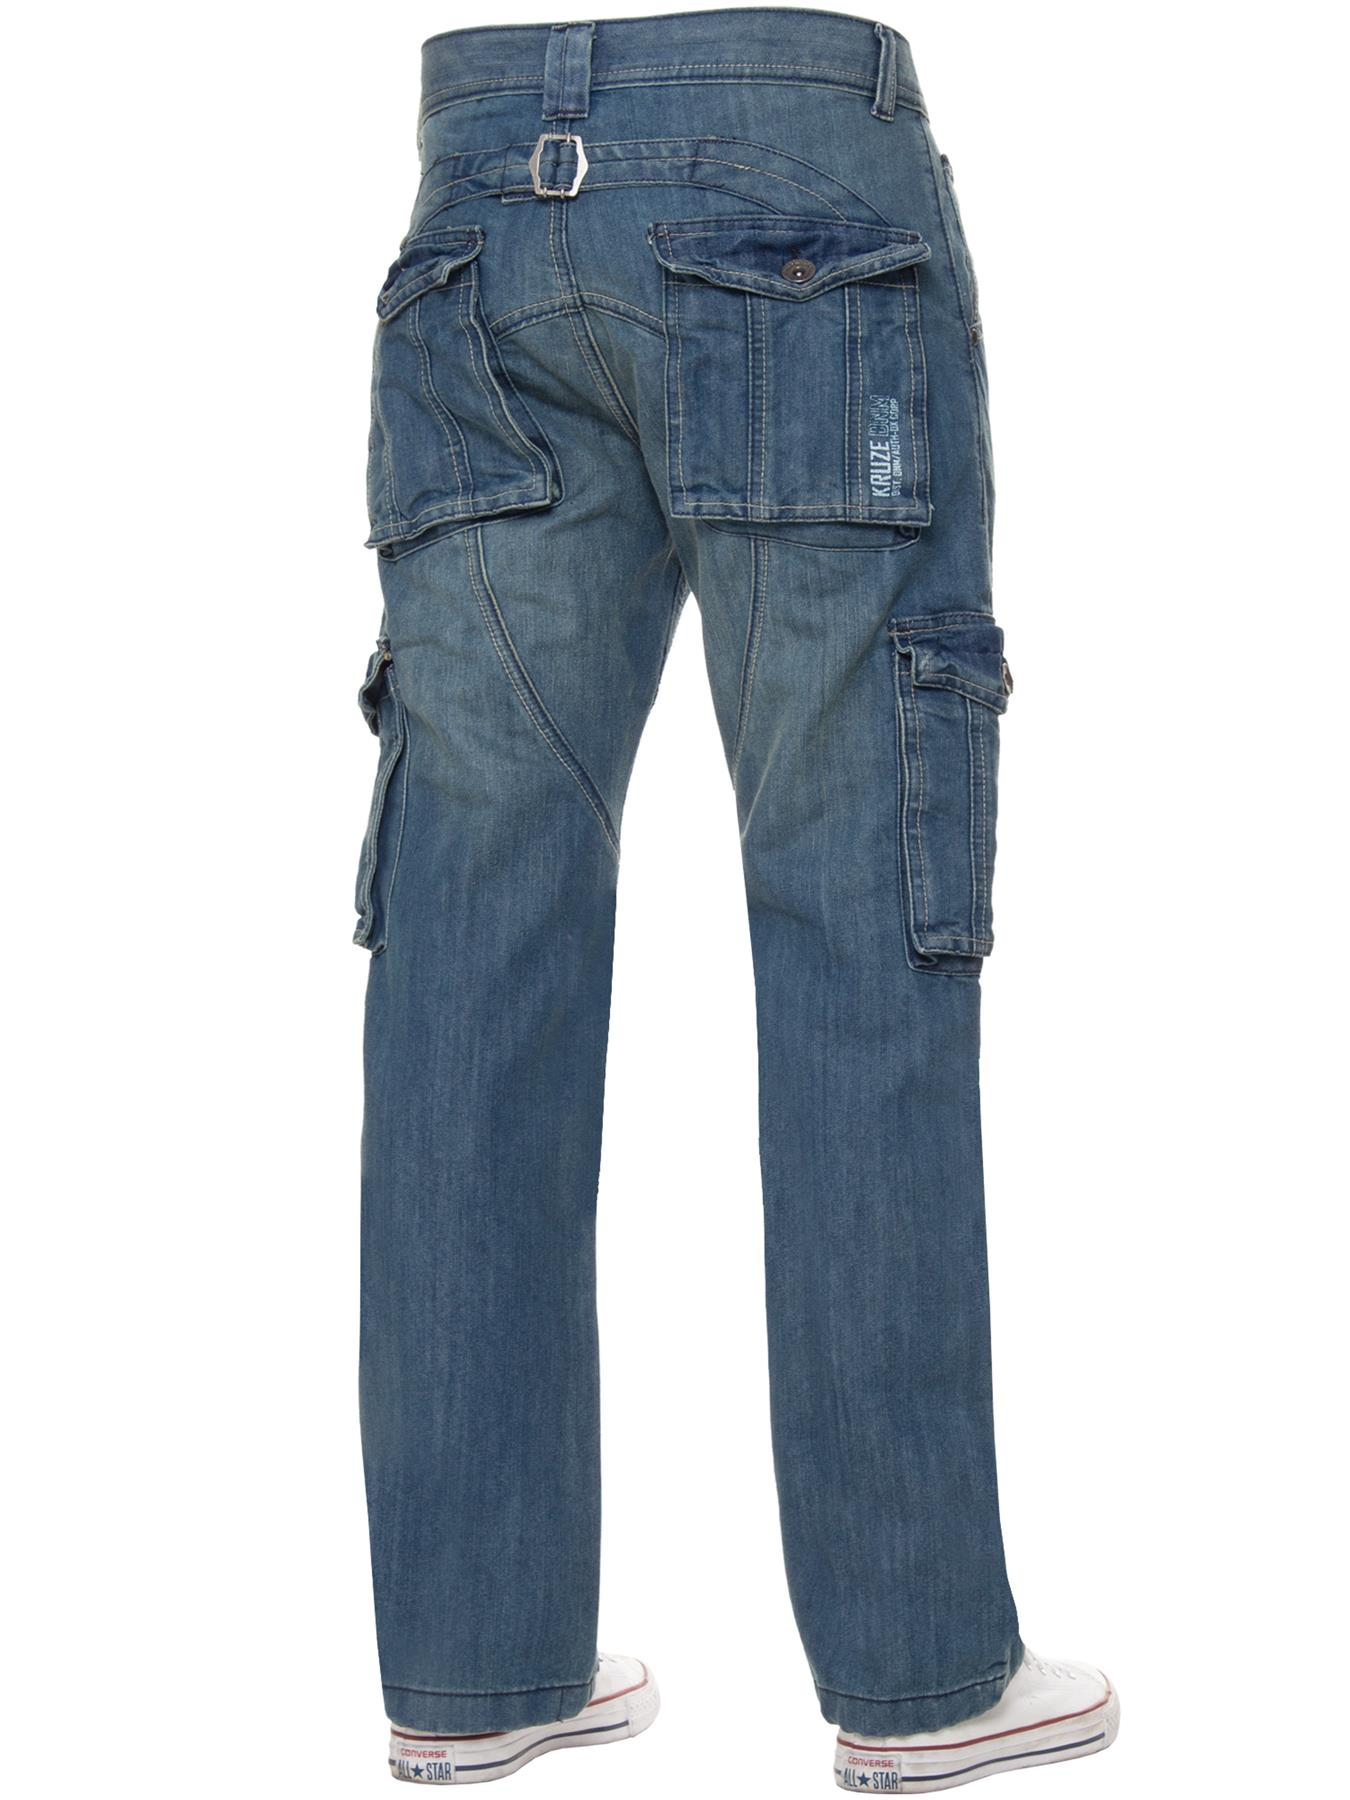 Kruze-Mens-Cargo-Combat-Jeans-Casual-Work-Denim-Pants-Big-Tall-All-Waist-Sizes thumbnail 11